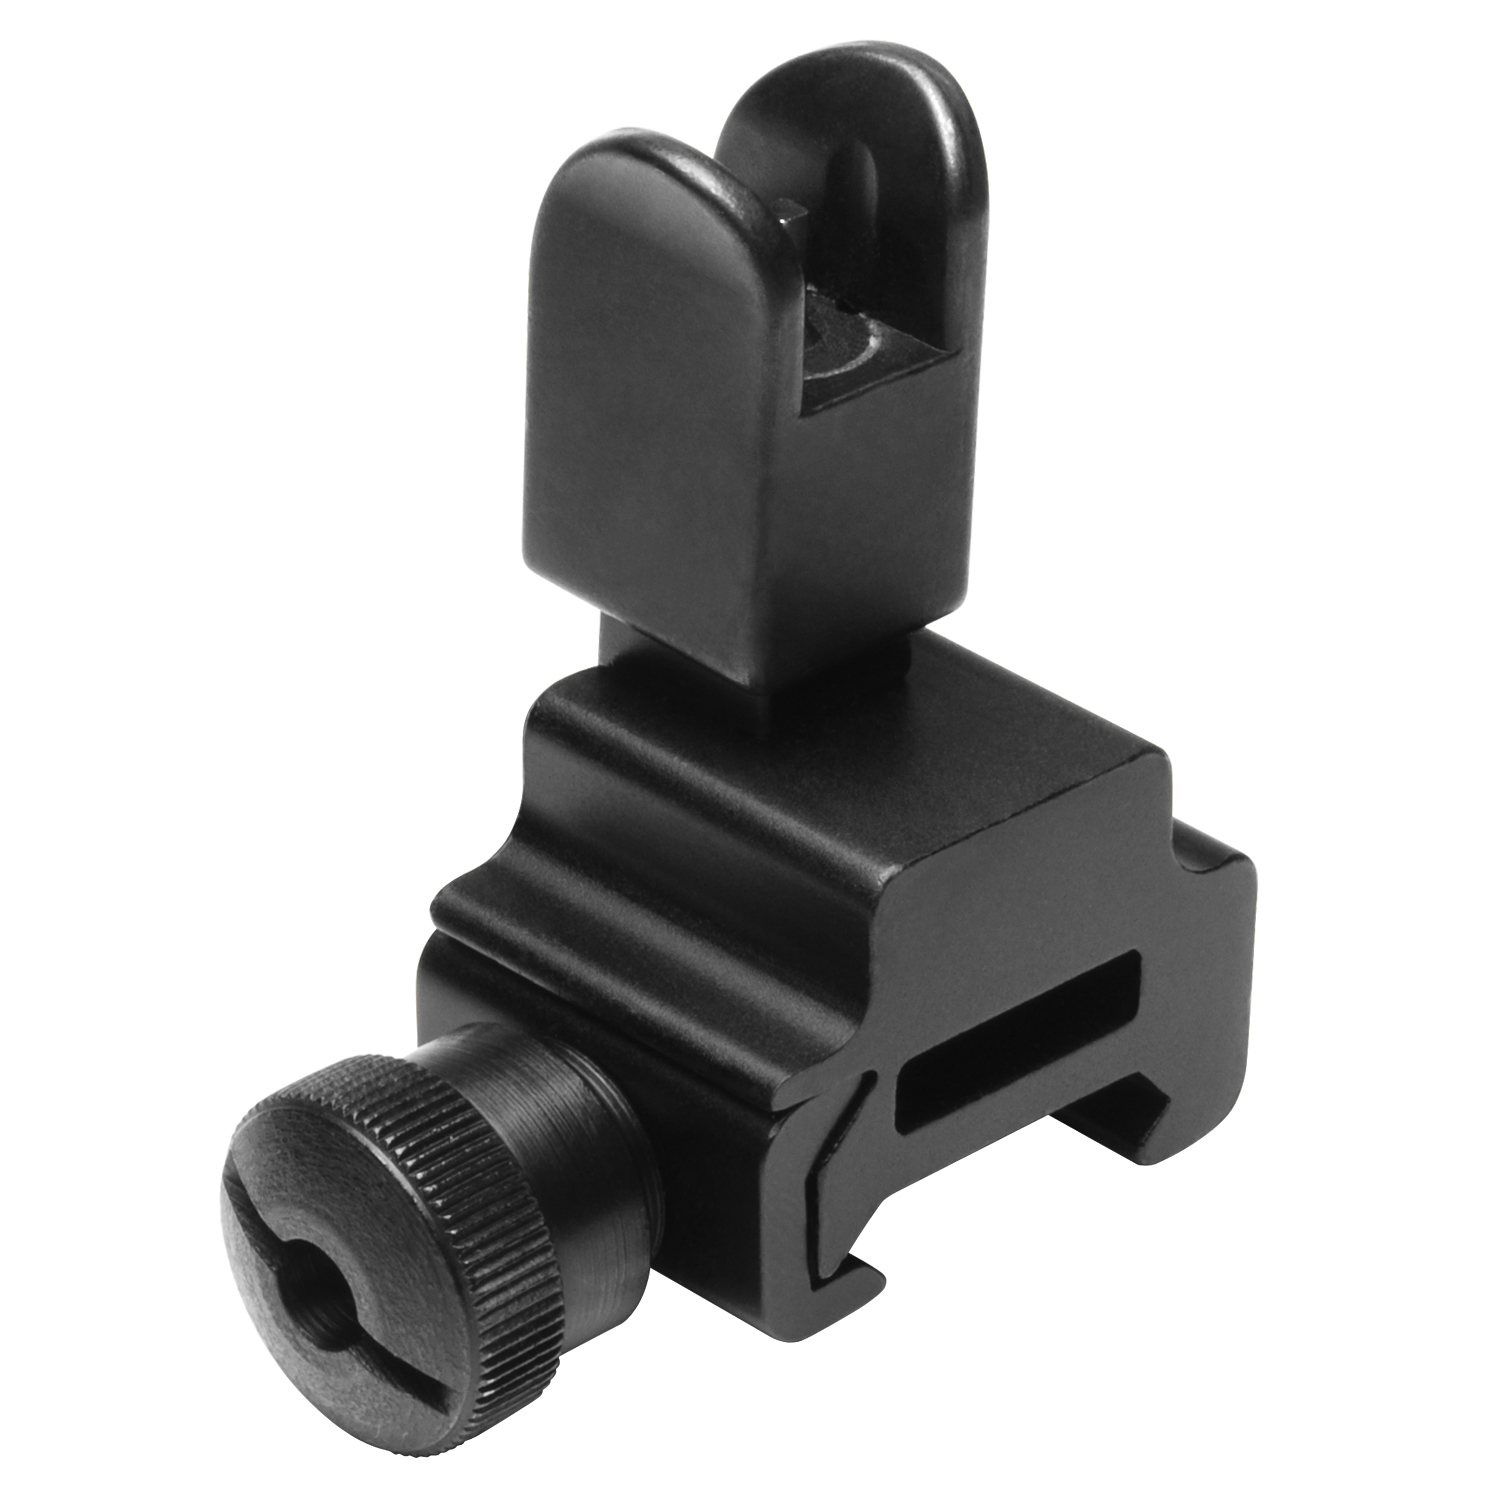 Ncstar AR-15 Style Metal Flip-Up Front Sight